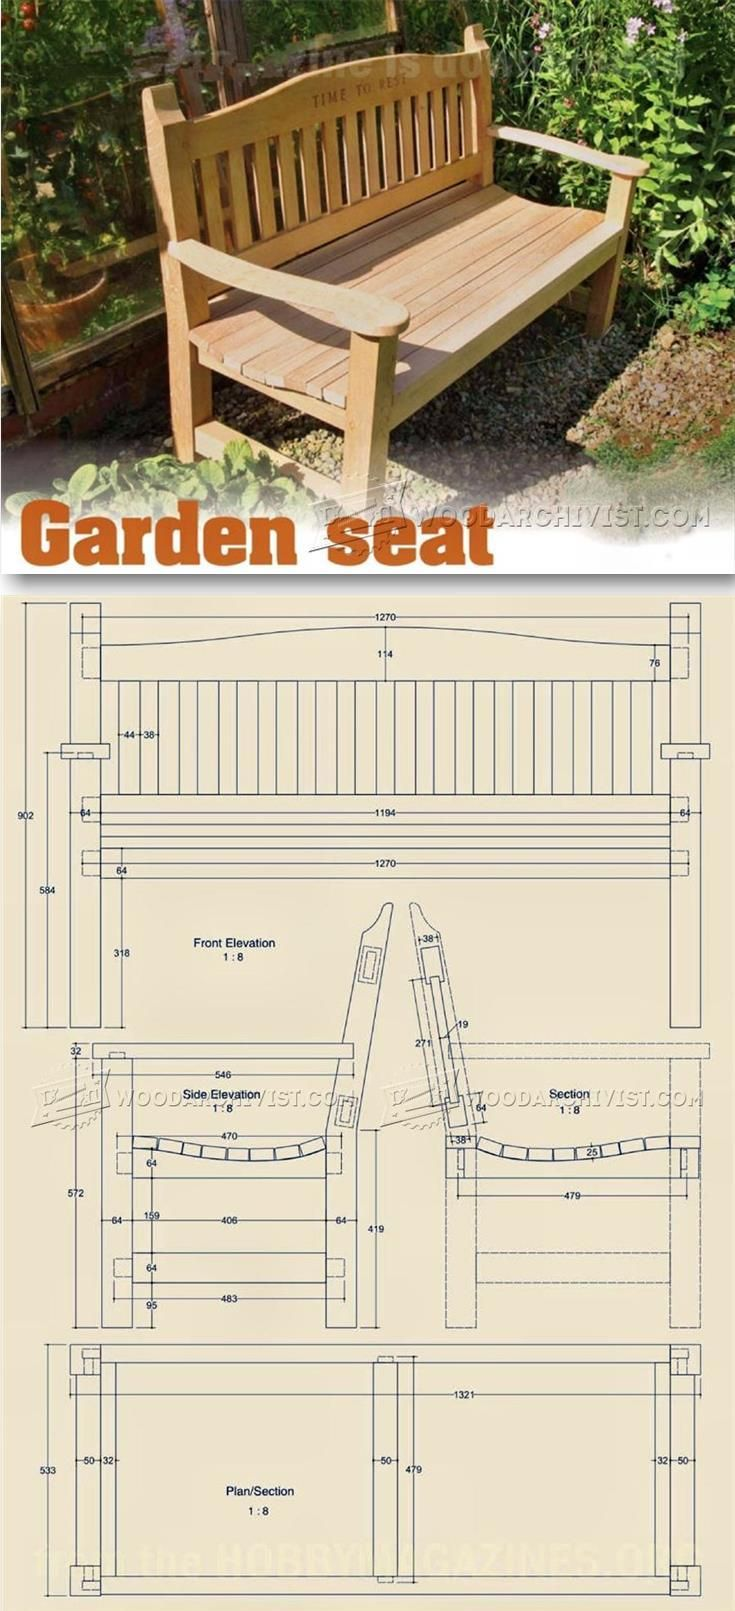 Outdoor furniture plans - Garden Seat Plans Outdoor Furniture Plans And Projects Woodarchivist Com